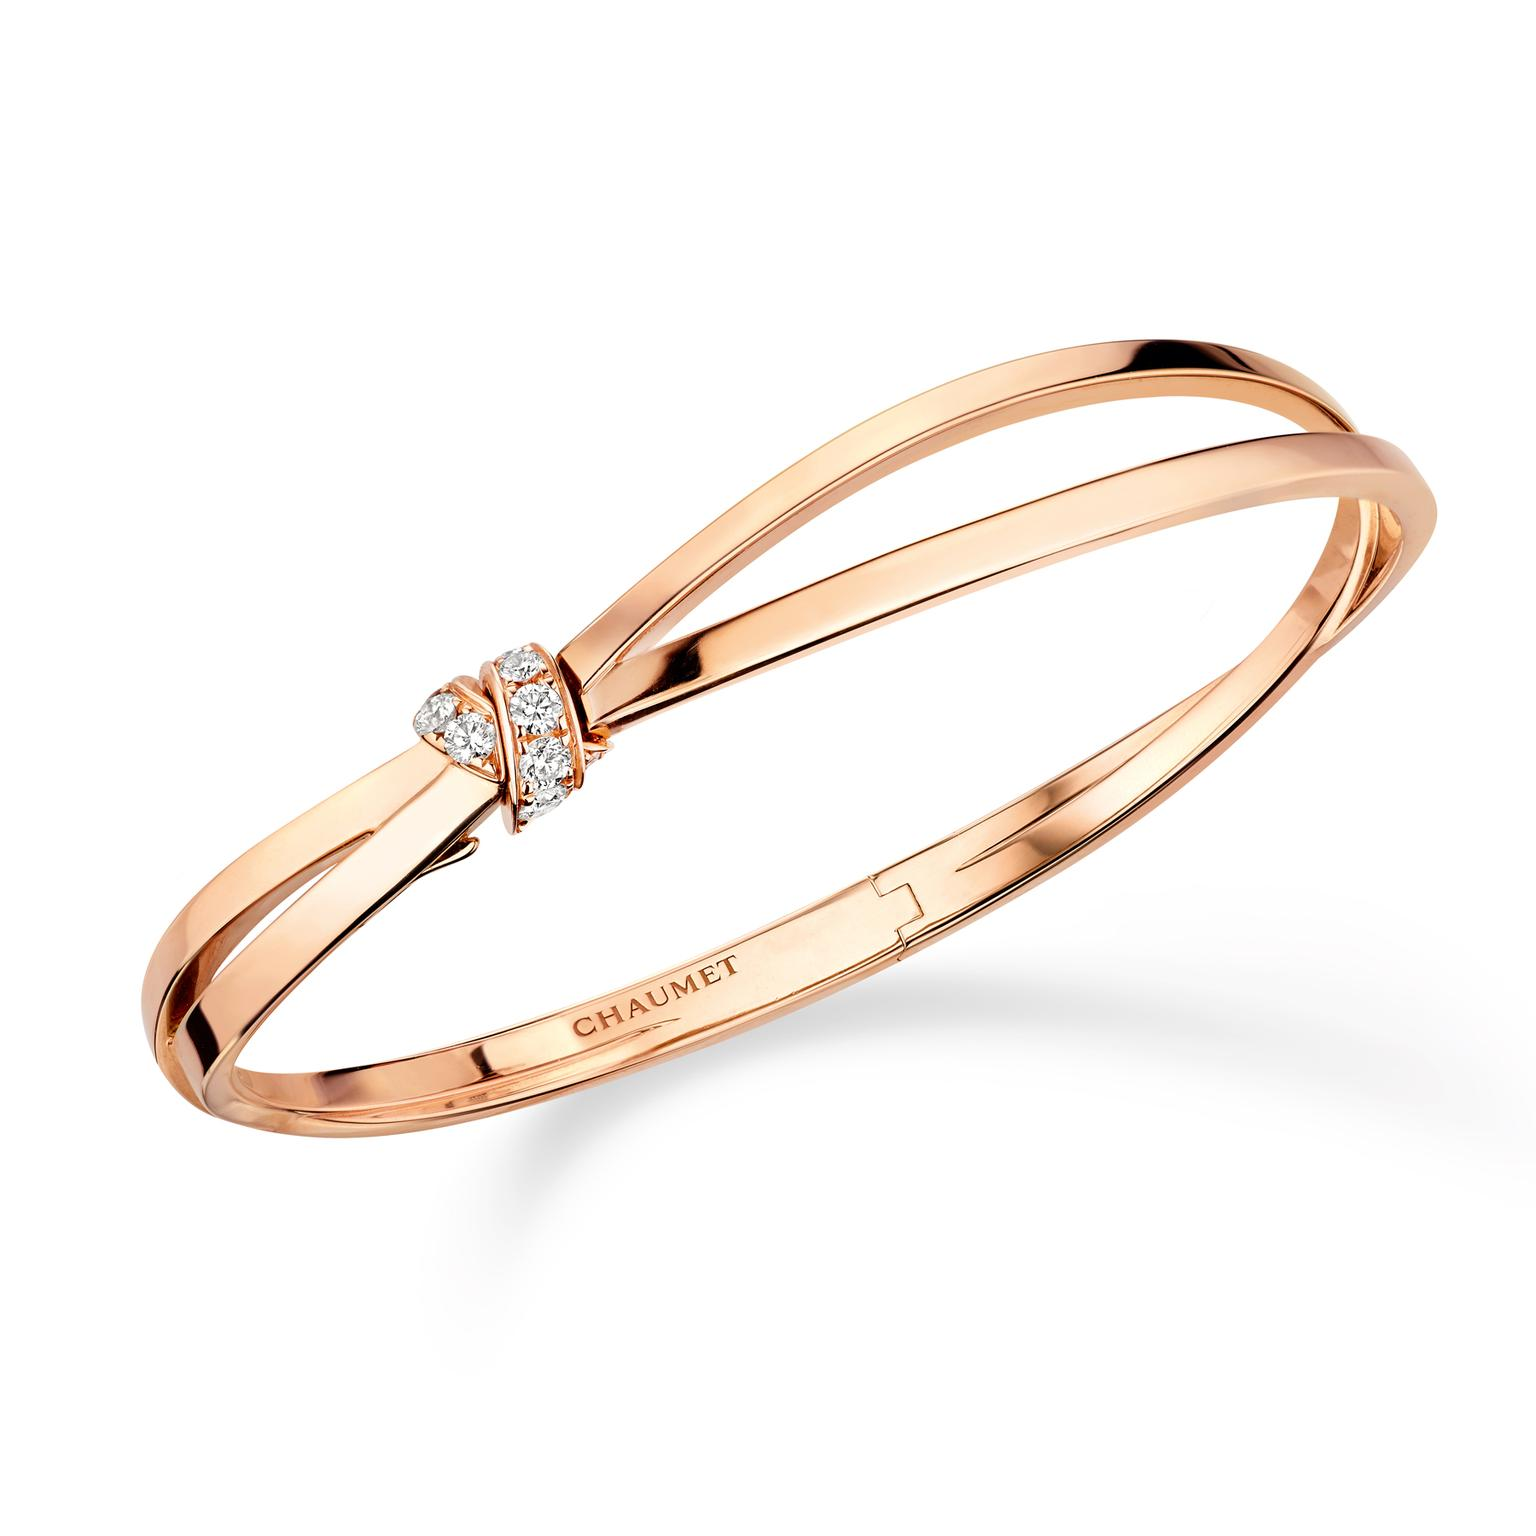 Chaumet Seduction rose gold bracelet